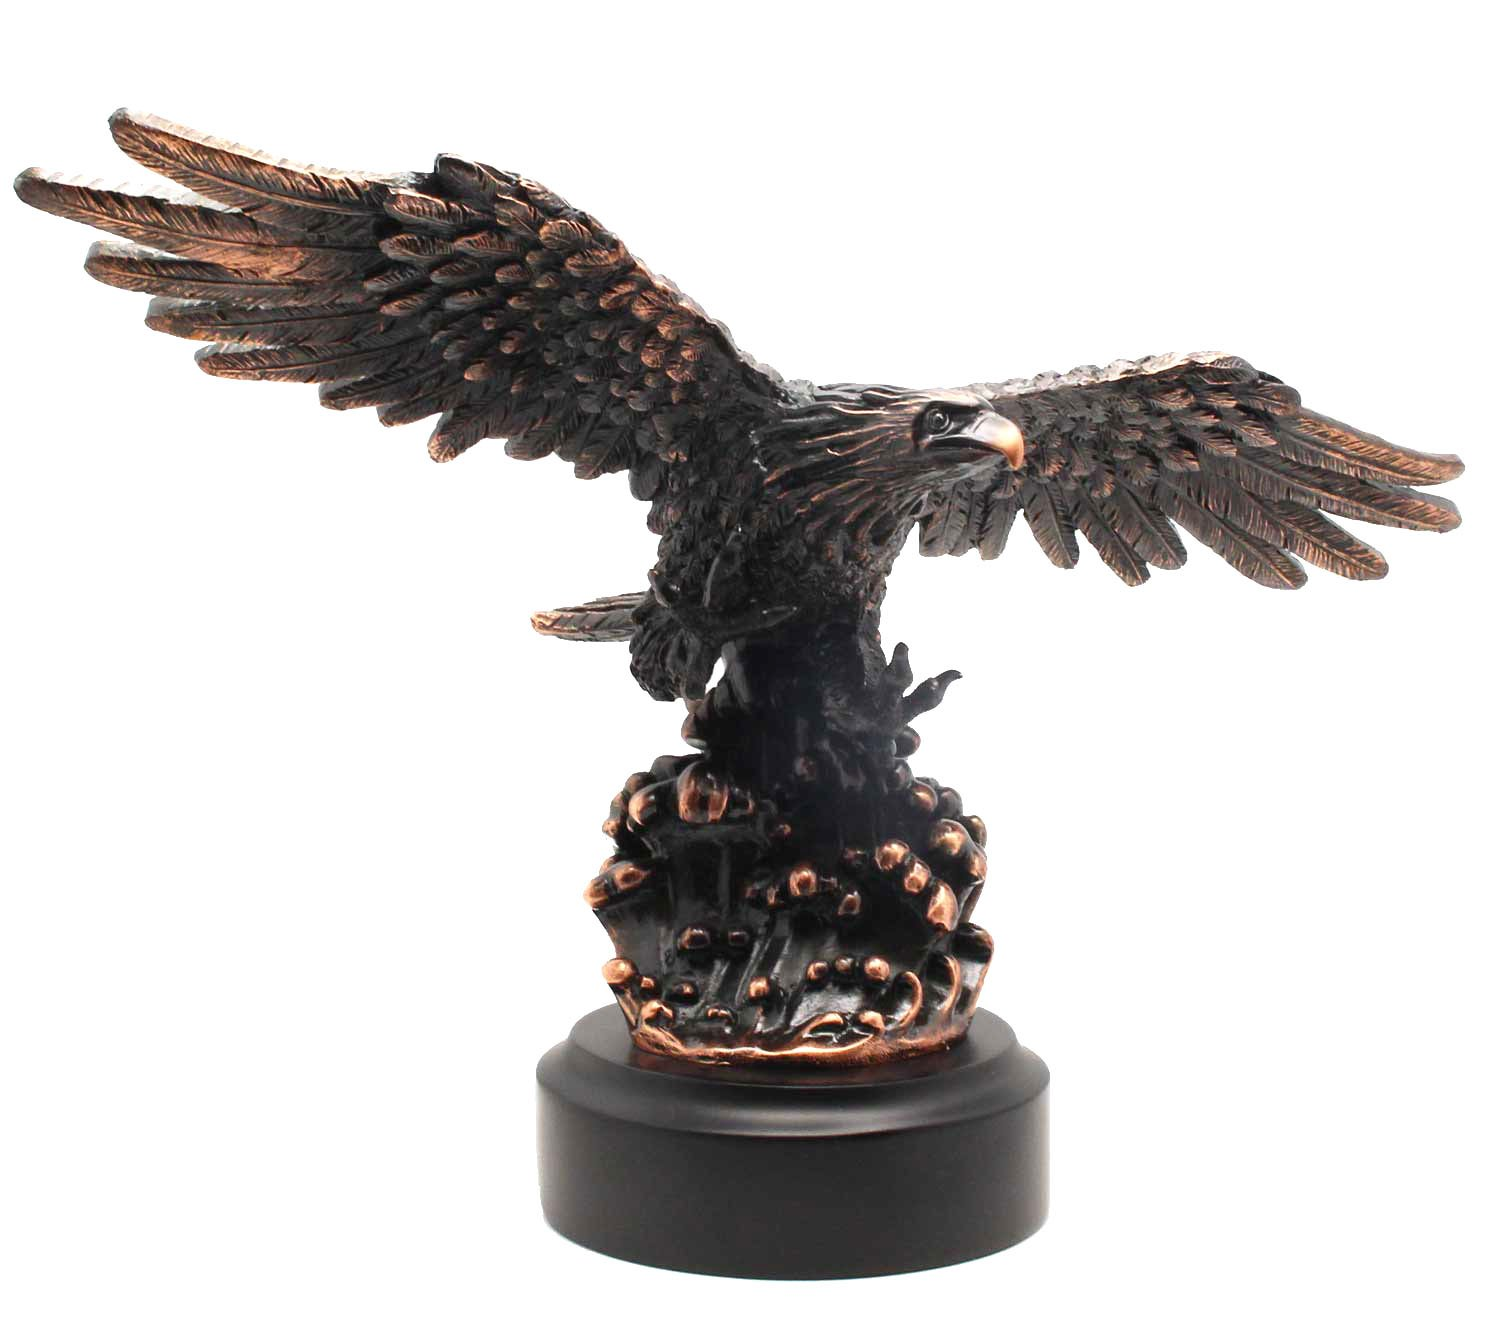 L7 Enterprises 13'' Bald Eagle Flying Above Cresting Waves Figurine | Sculpture | Figurine by L7 Enterprises